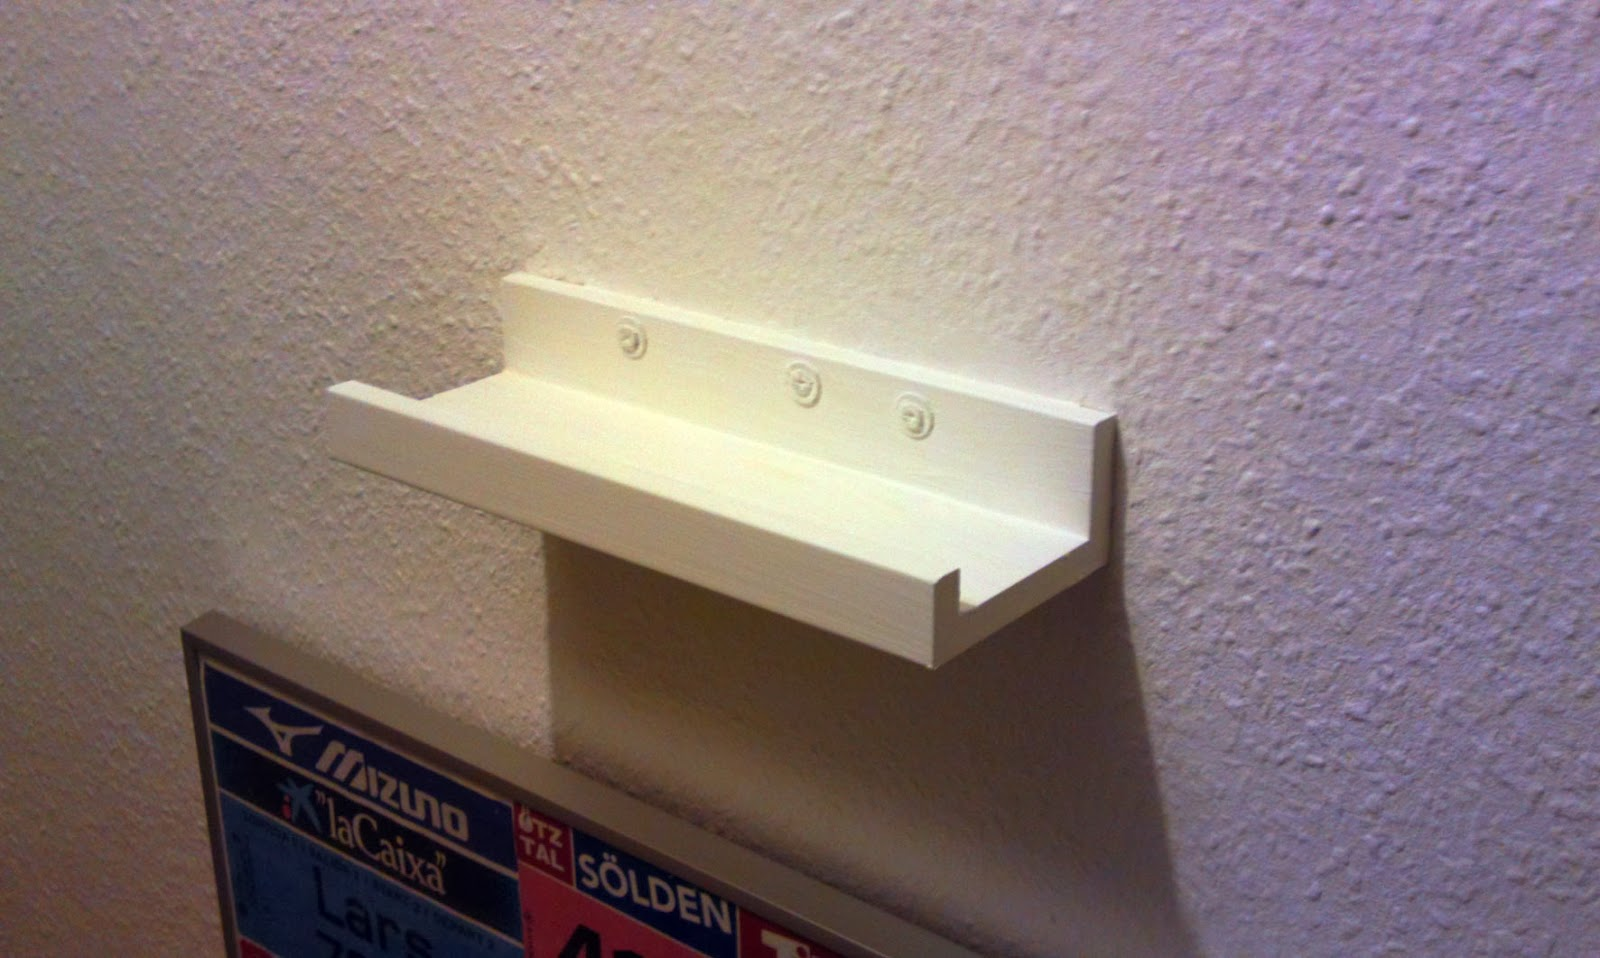 Ikea Galant Storage Unit For Printer ~ DALI KNX LED Lichtvouten Preiskalkulation  KNX User Forum